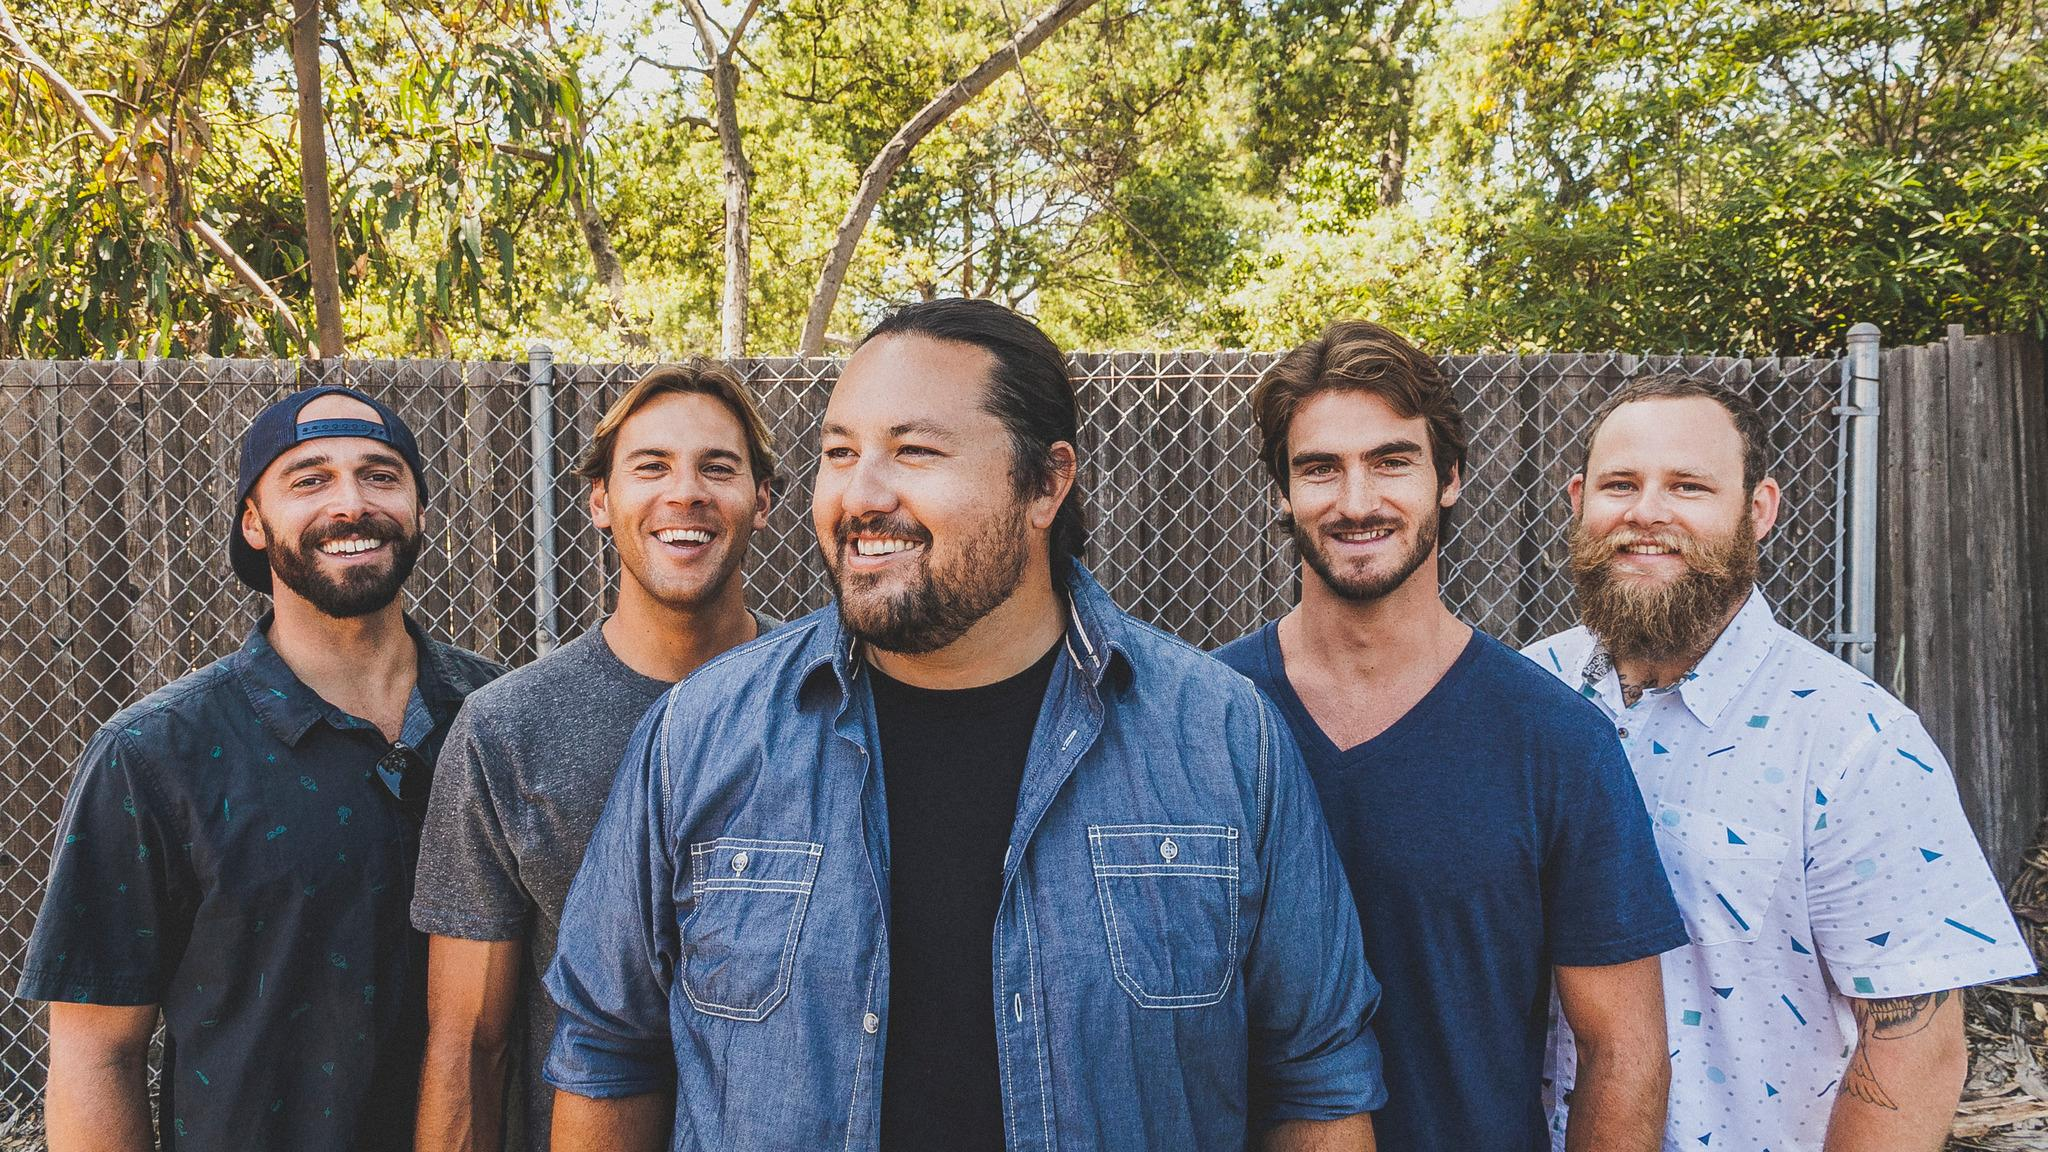 Iration - Meet & Greet Packages at Mesa Theater and Club